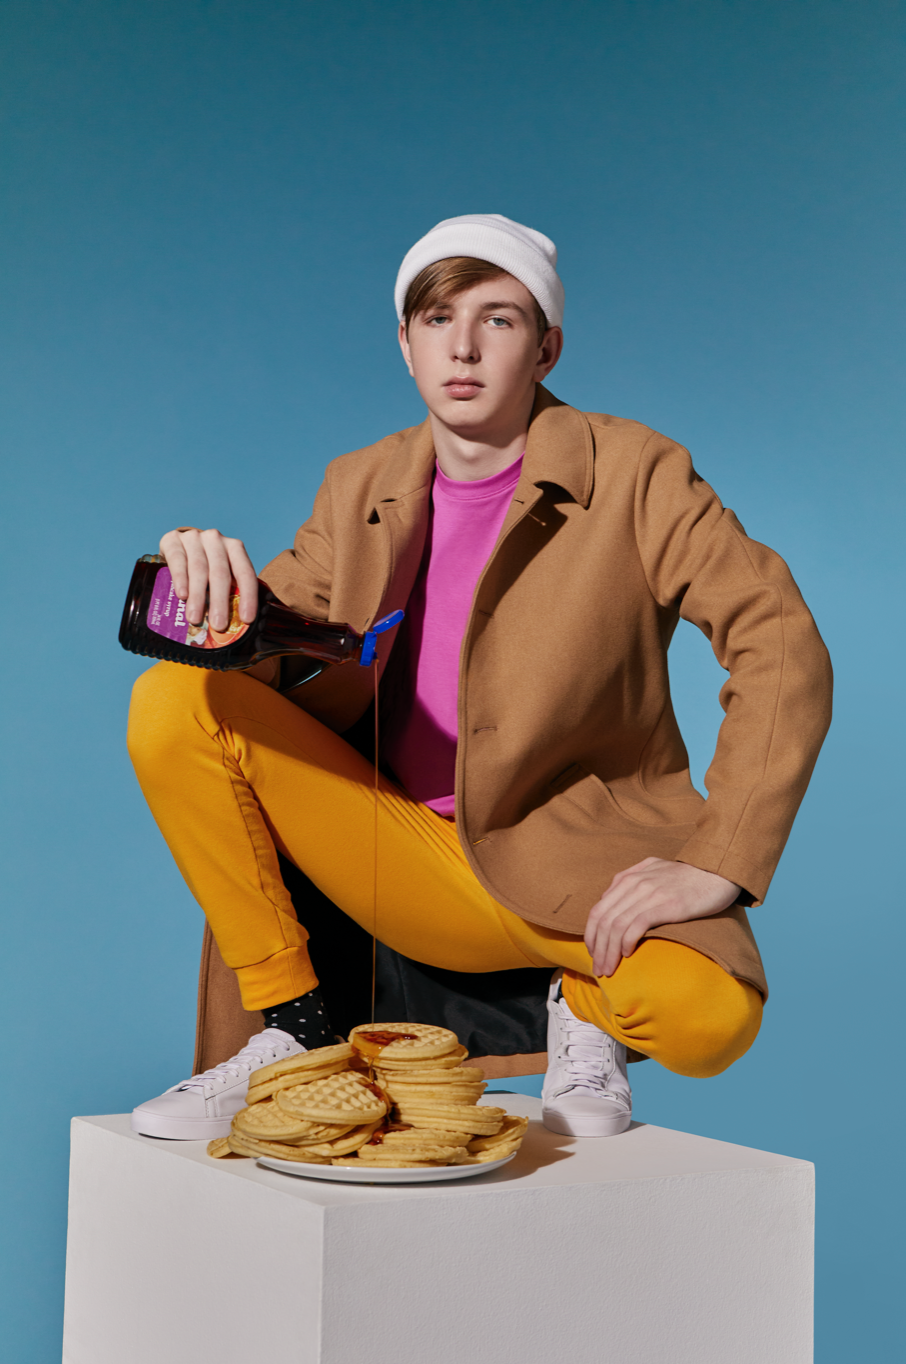 Whethan Approved Press Photo.png